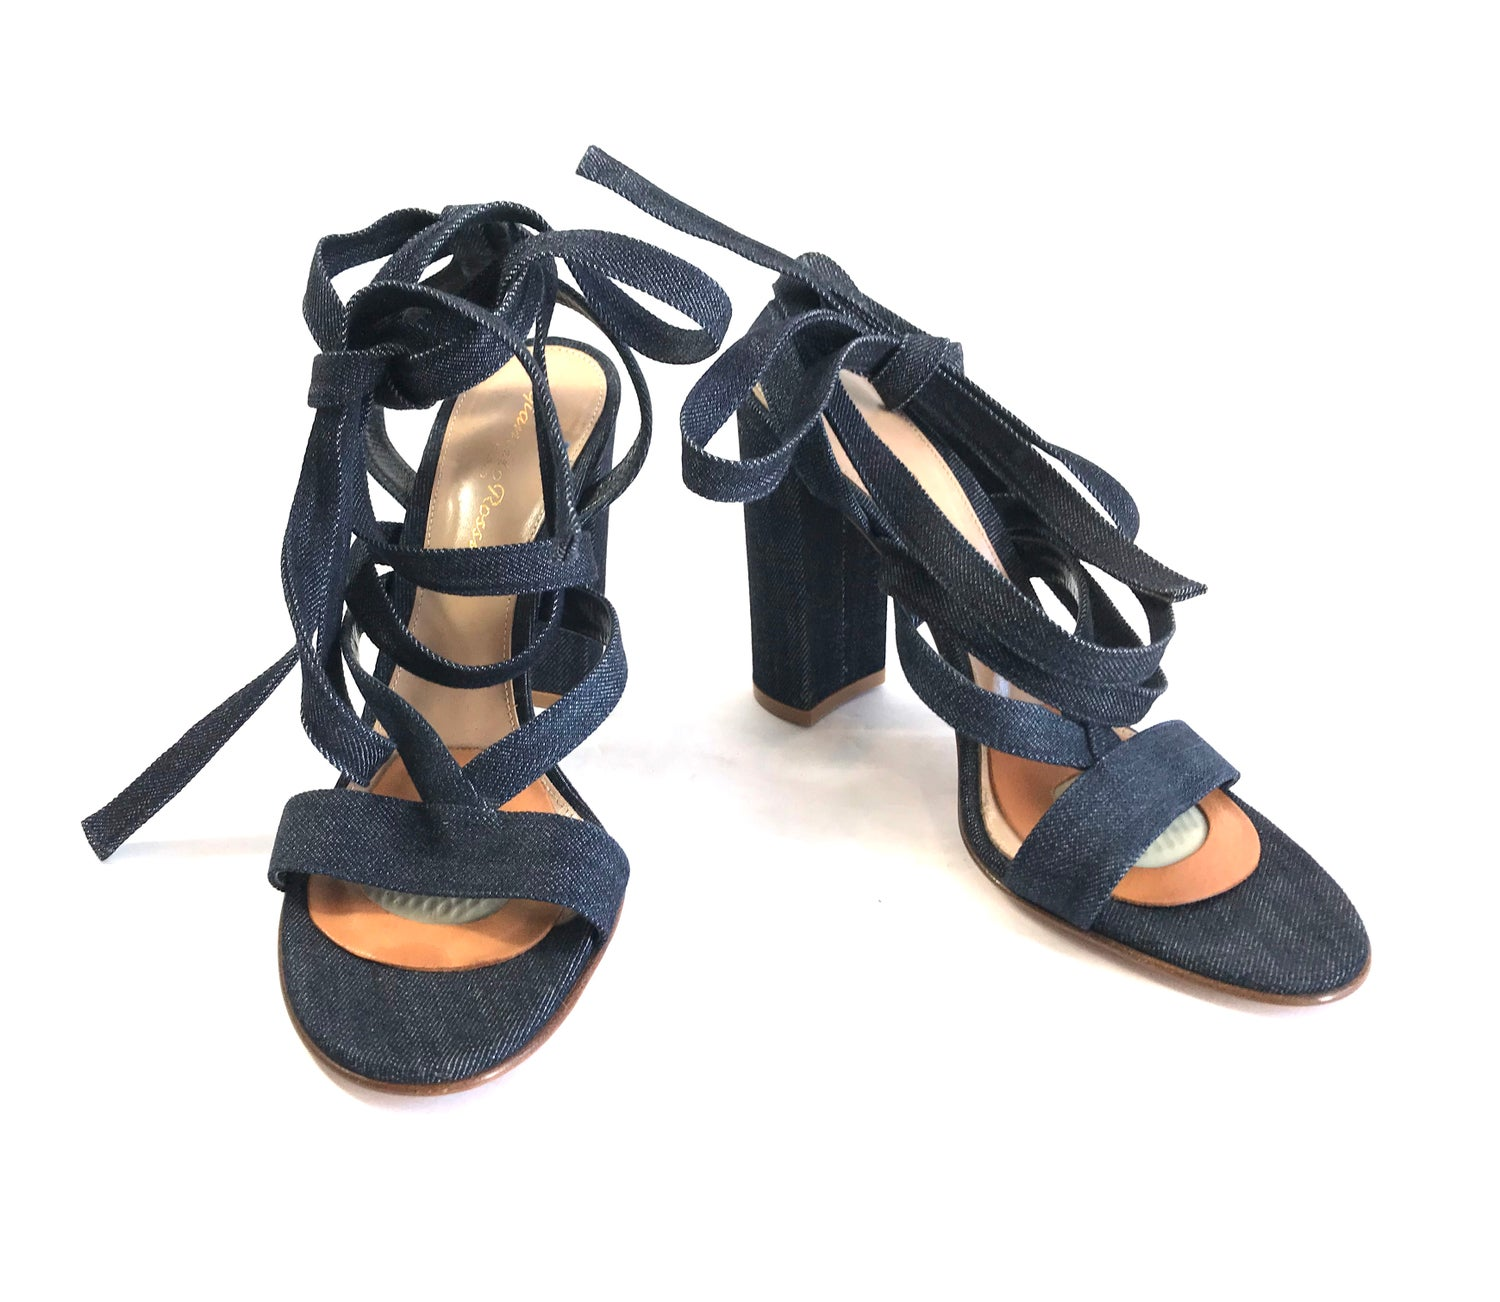 Image of Gianvito Rossi Size 37.5 Sandals 6-895